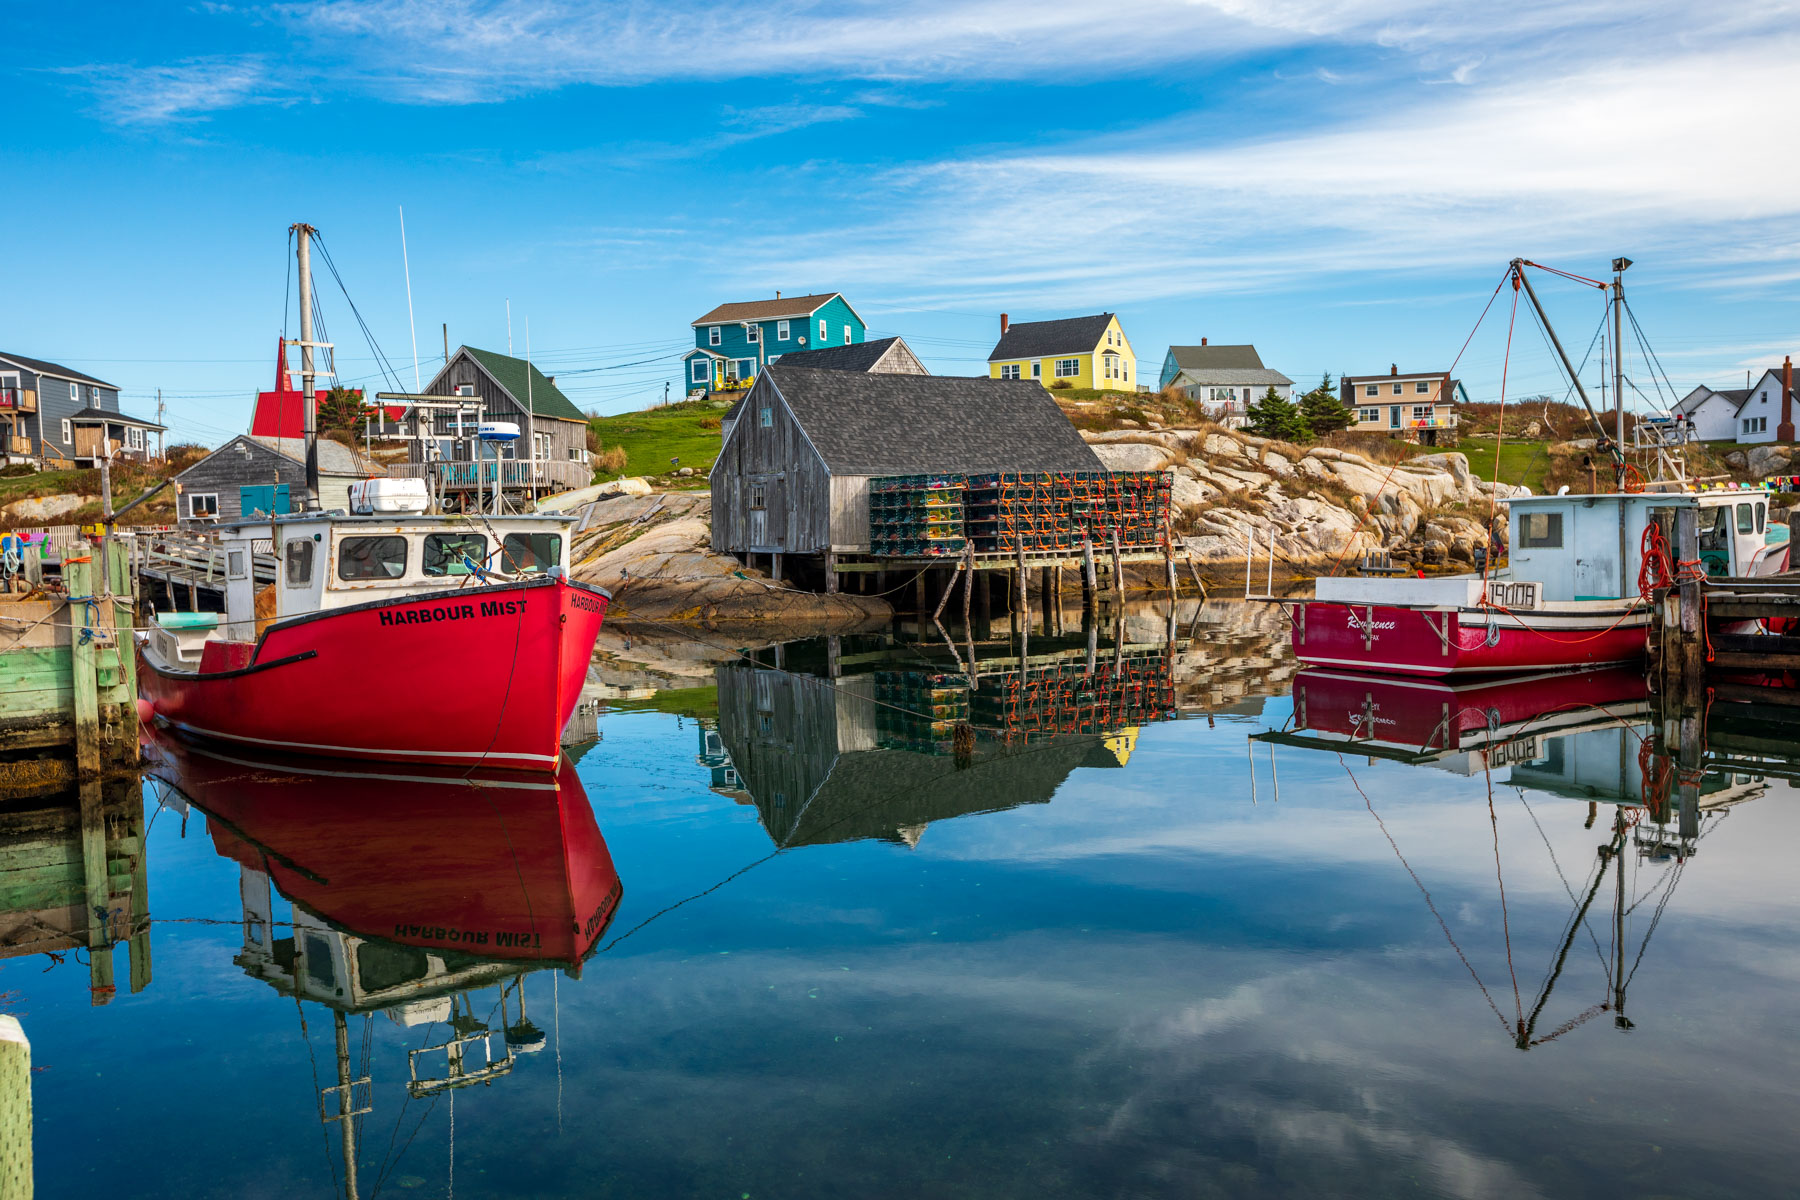 Peggy's Cove fising boats and huts, Nova Scotia, Canada